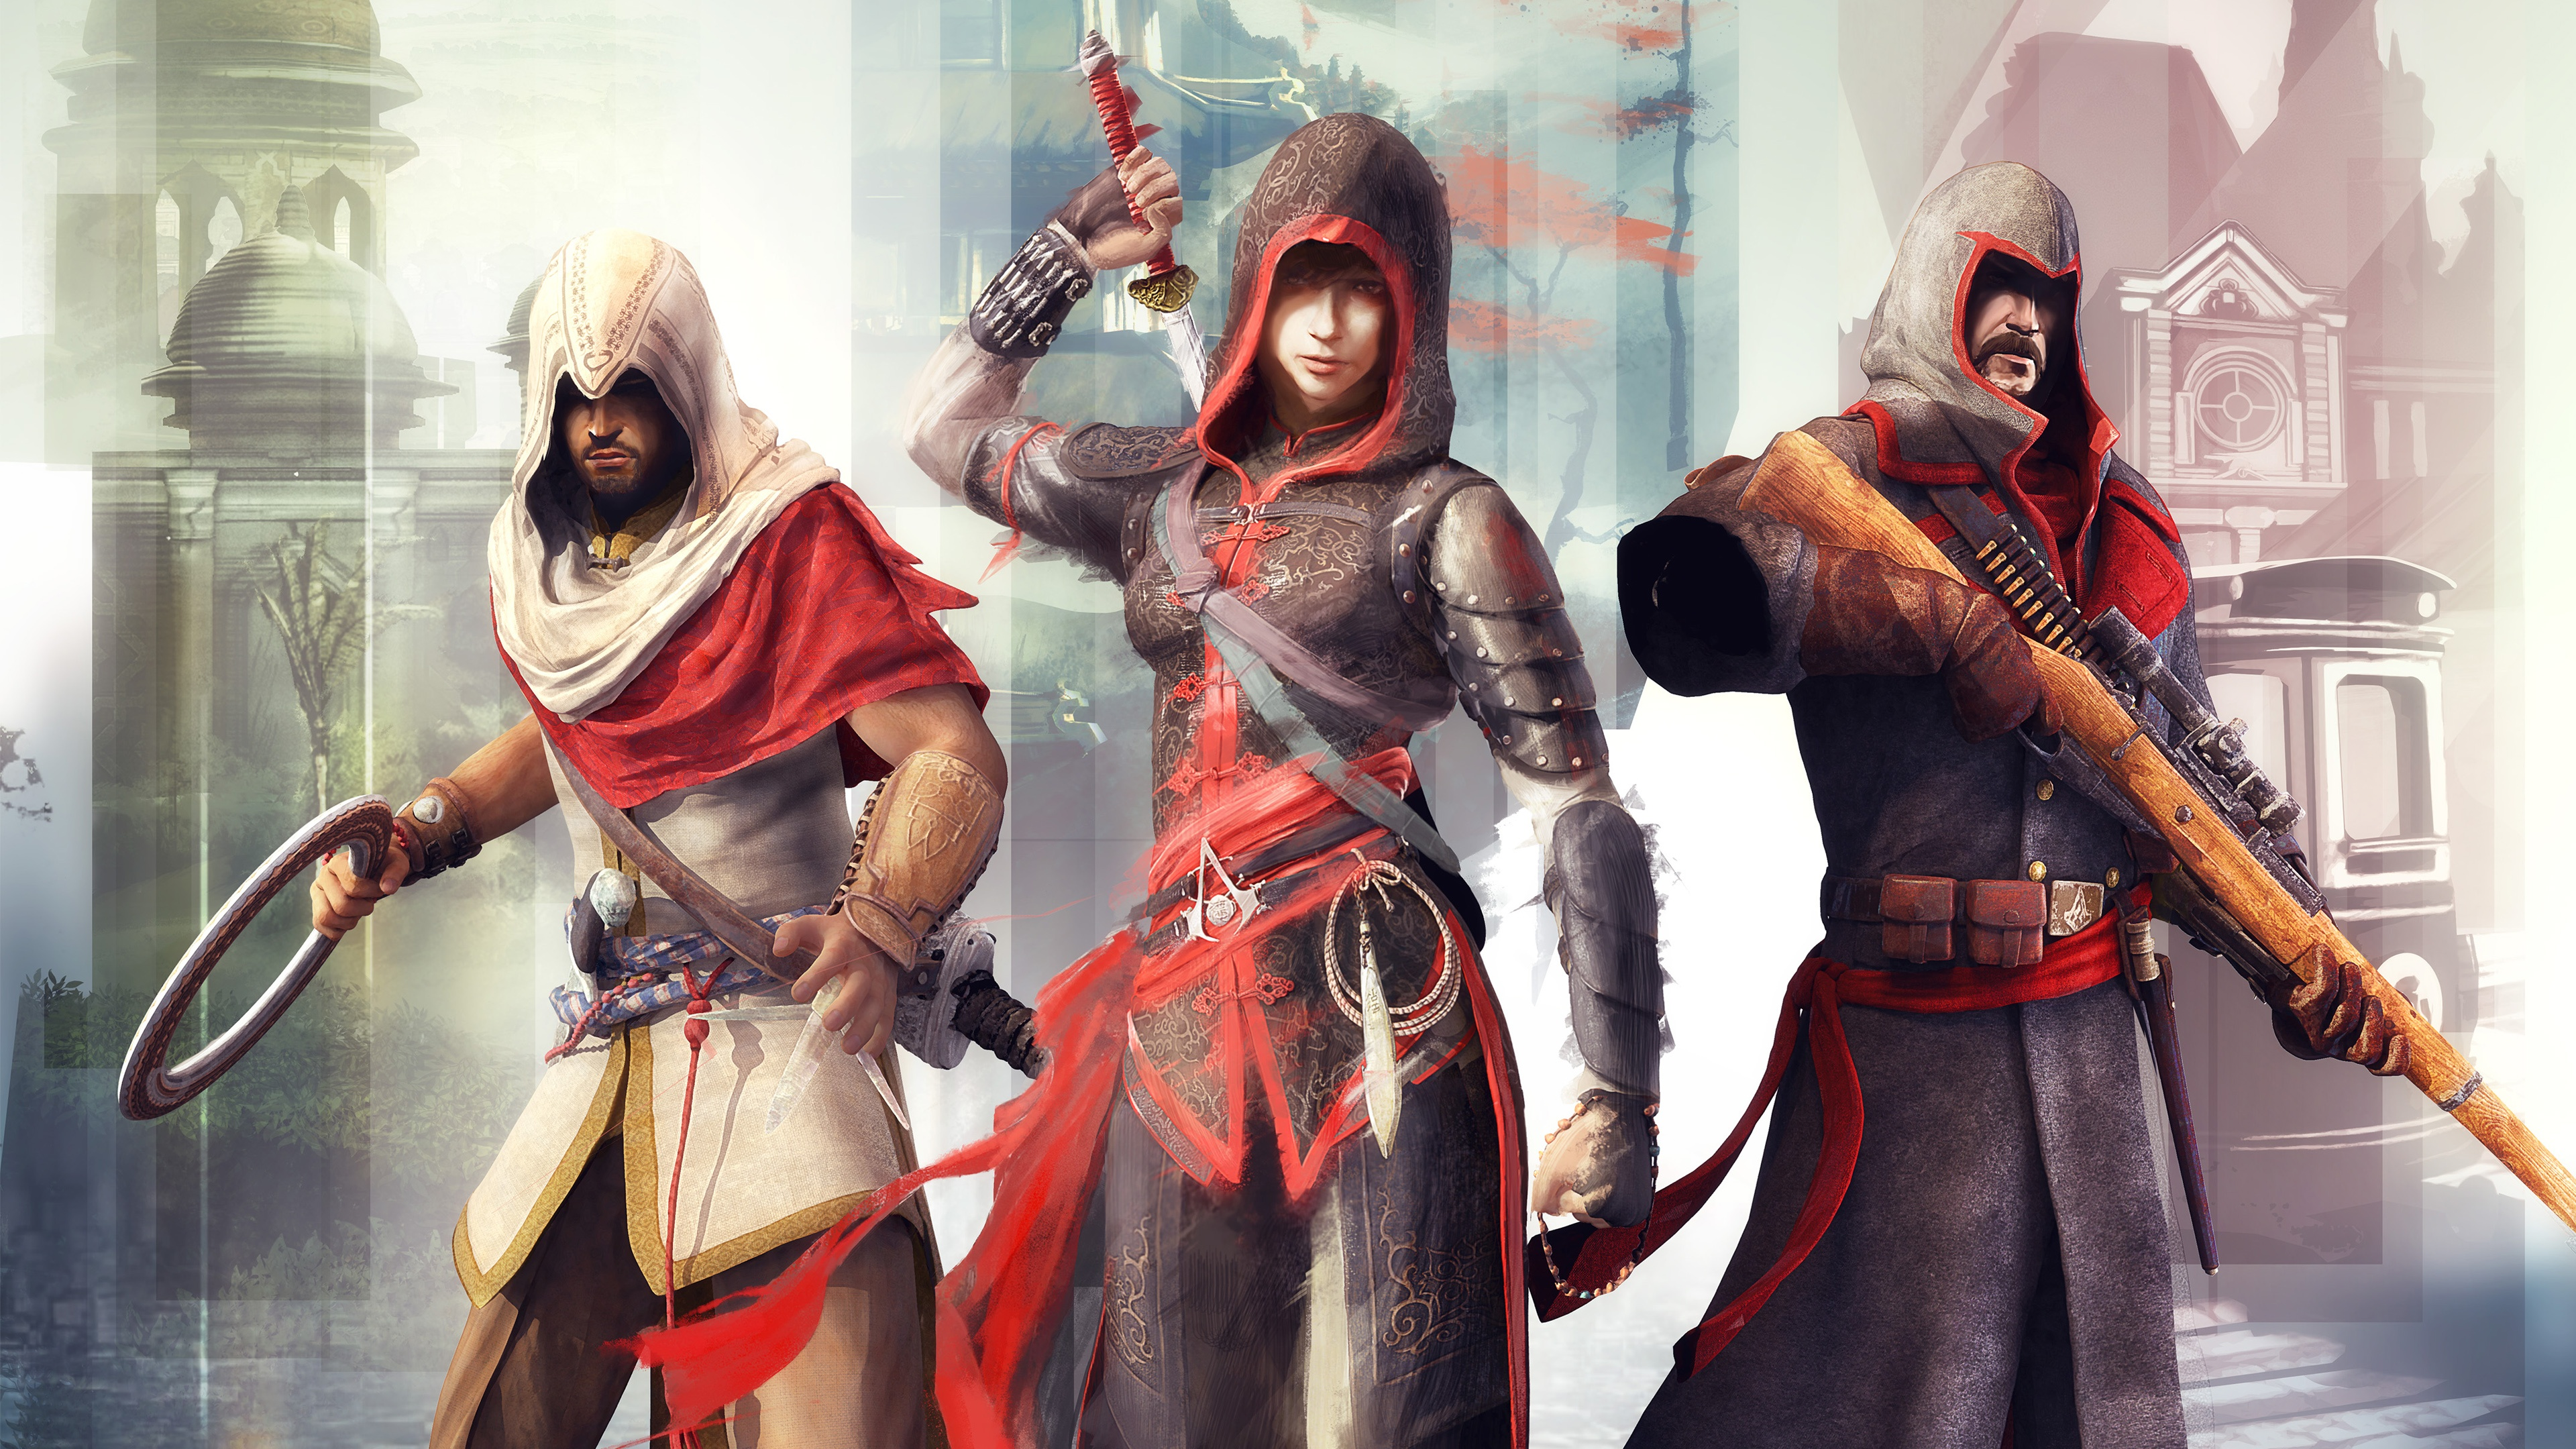 Assassins Creed Chronicles China Wallpapers In Jpg Format For Free